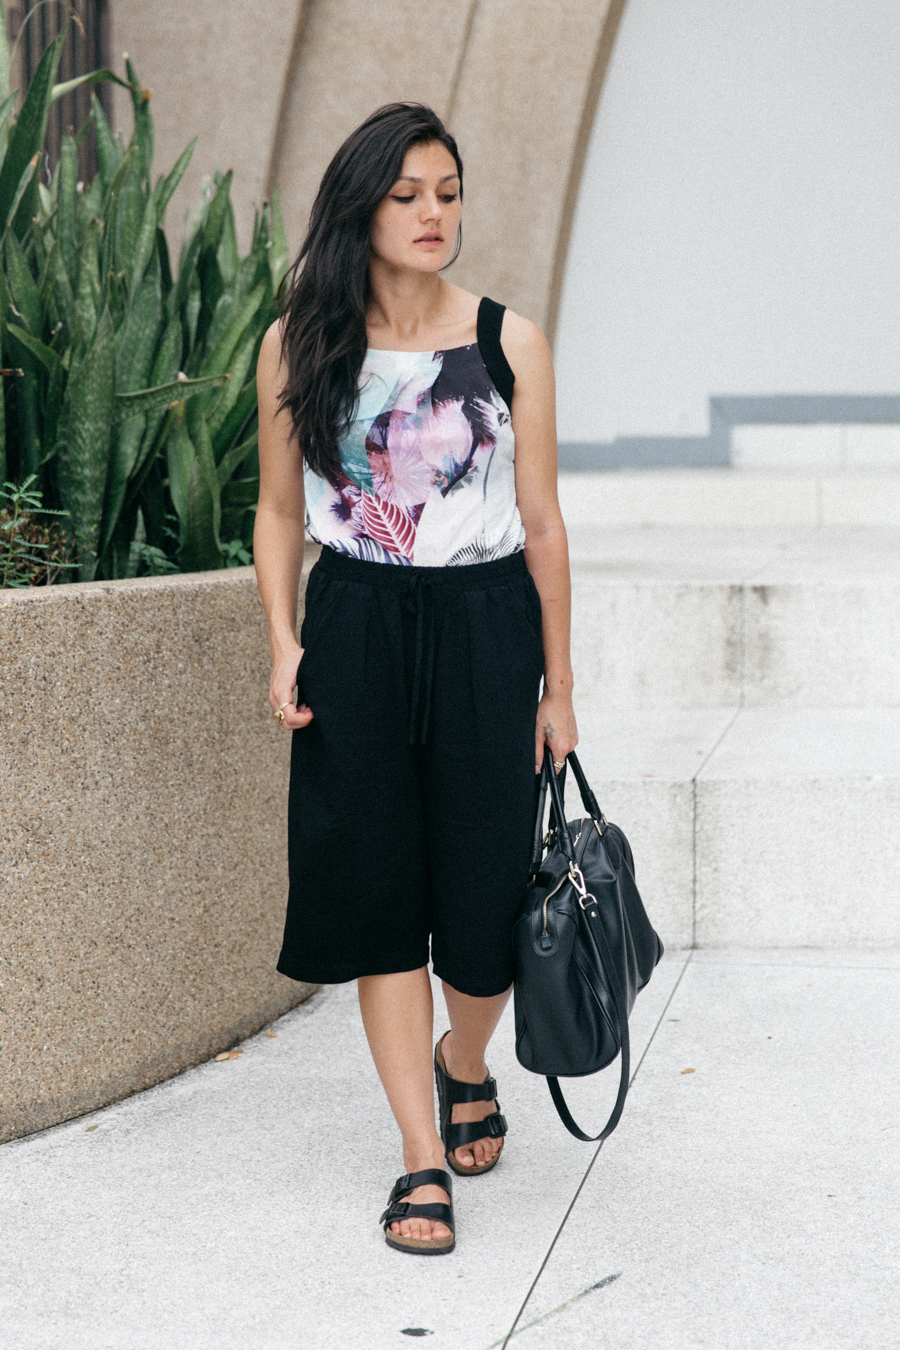 POL Clothing Mirage tank top with palm print. Black culottes from Forever 21 in Bangkok.